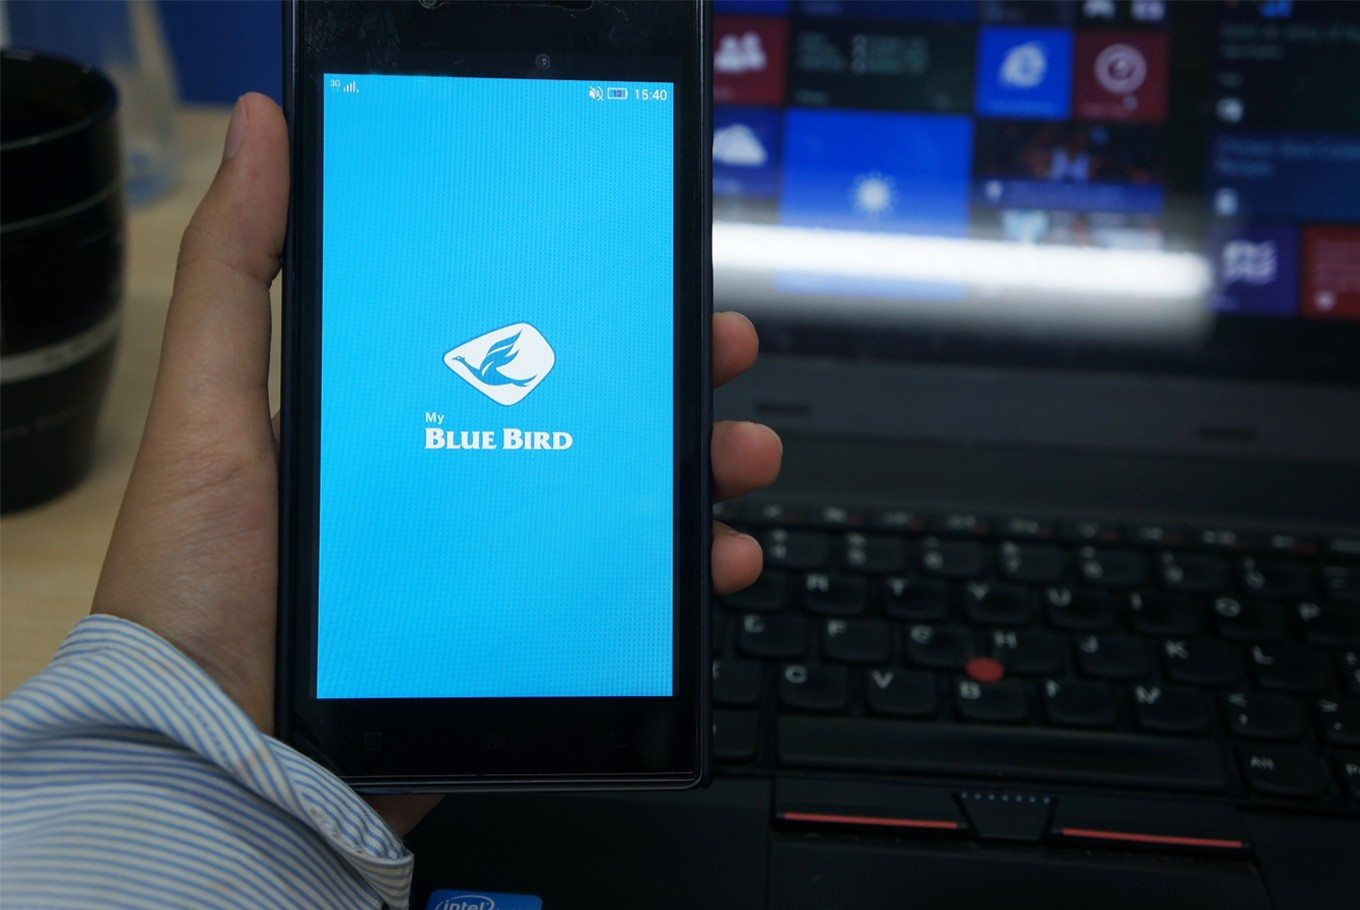 Blue Bird updates app to catch up to competition